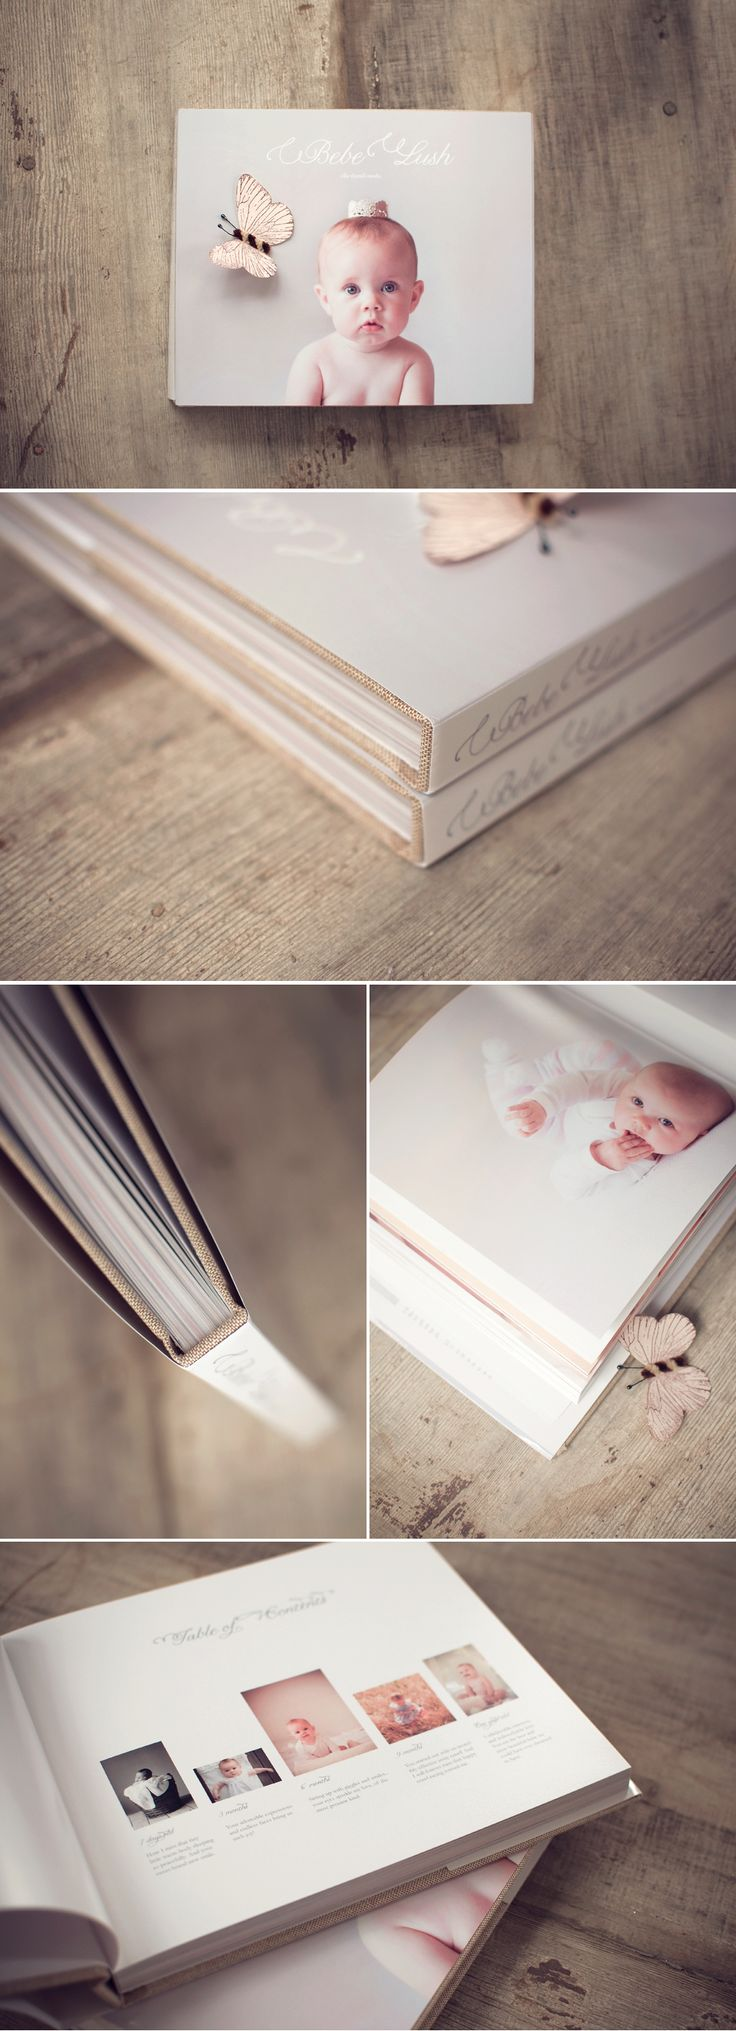 beautiful baby book: I so need to make these for the kids before I forget everything. They are growing so fast!